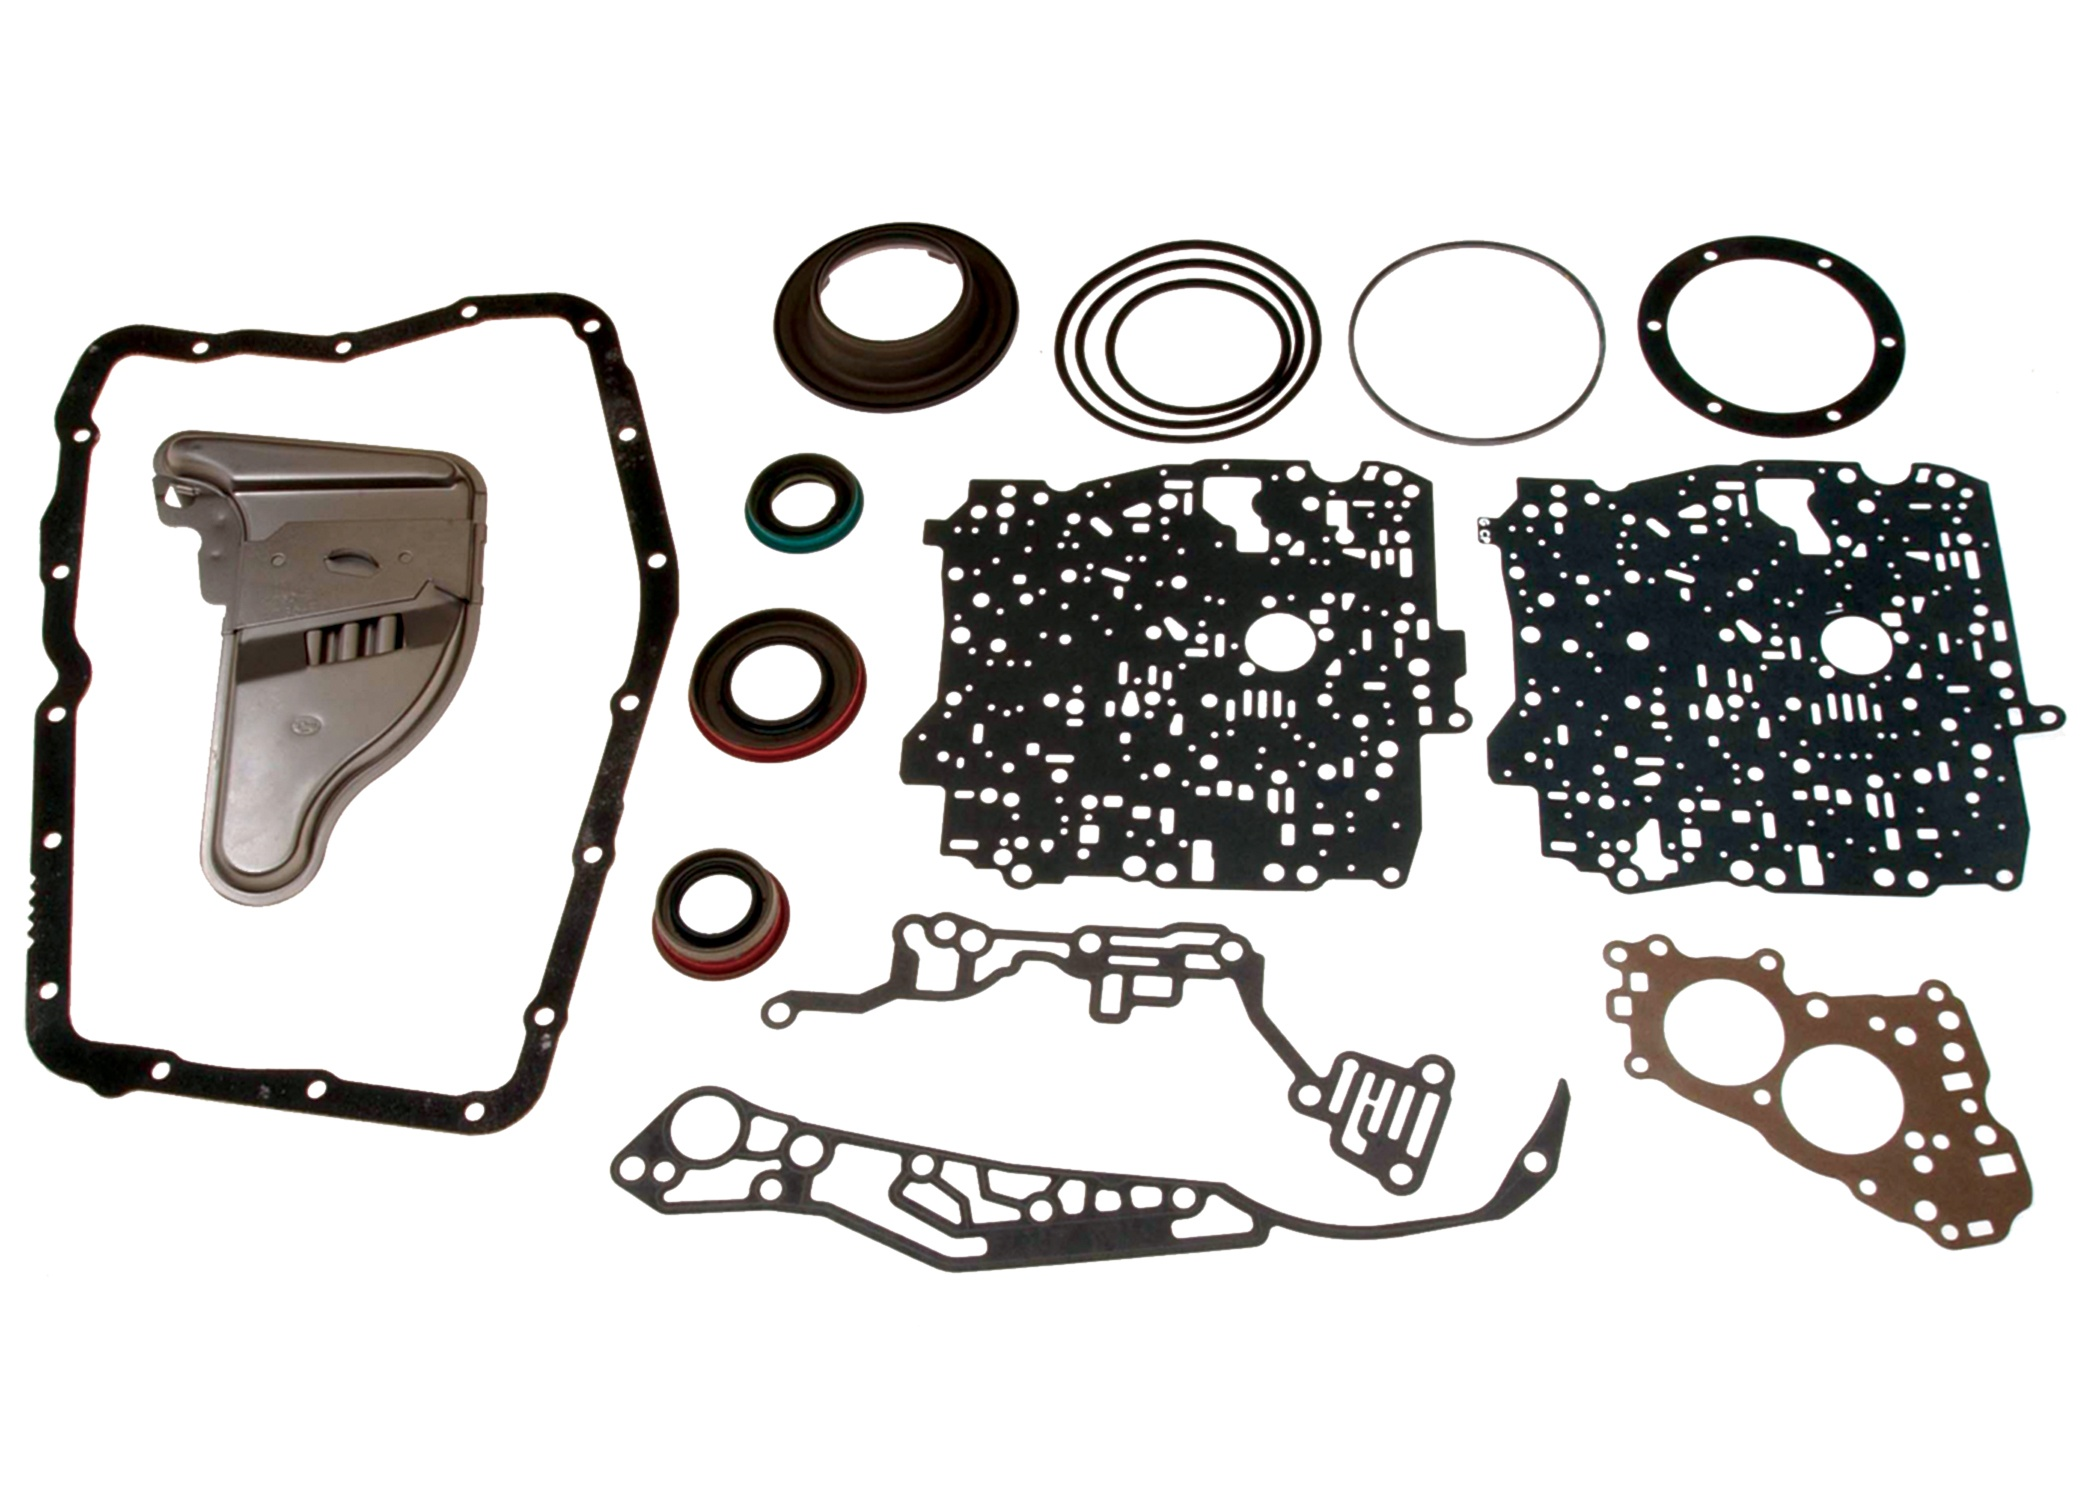 ACDELCO OE SERVICE - Auto Trans Gasket Kit - DCB 24204811